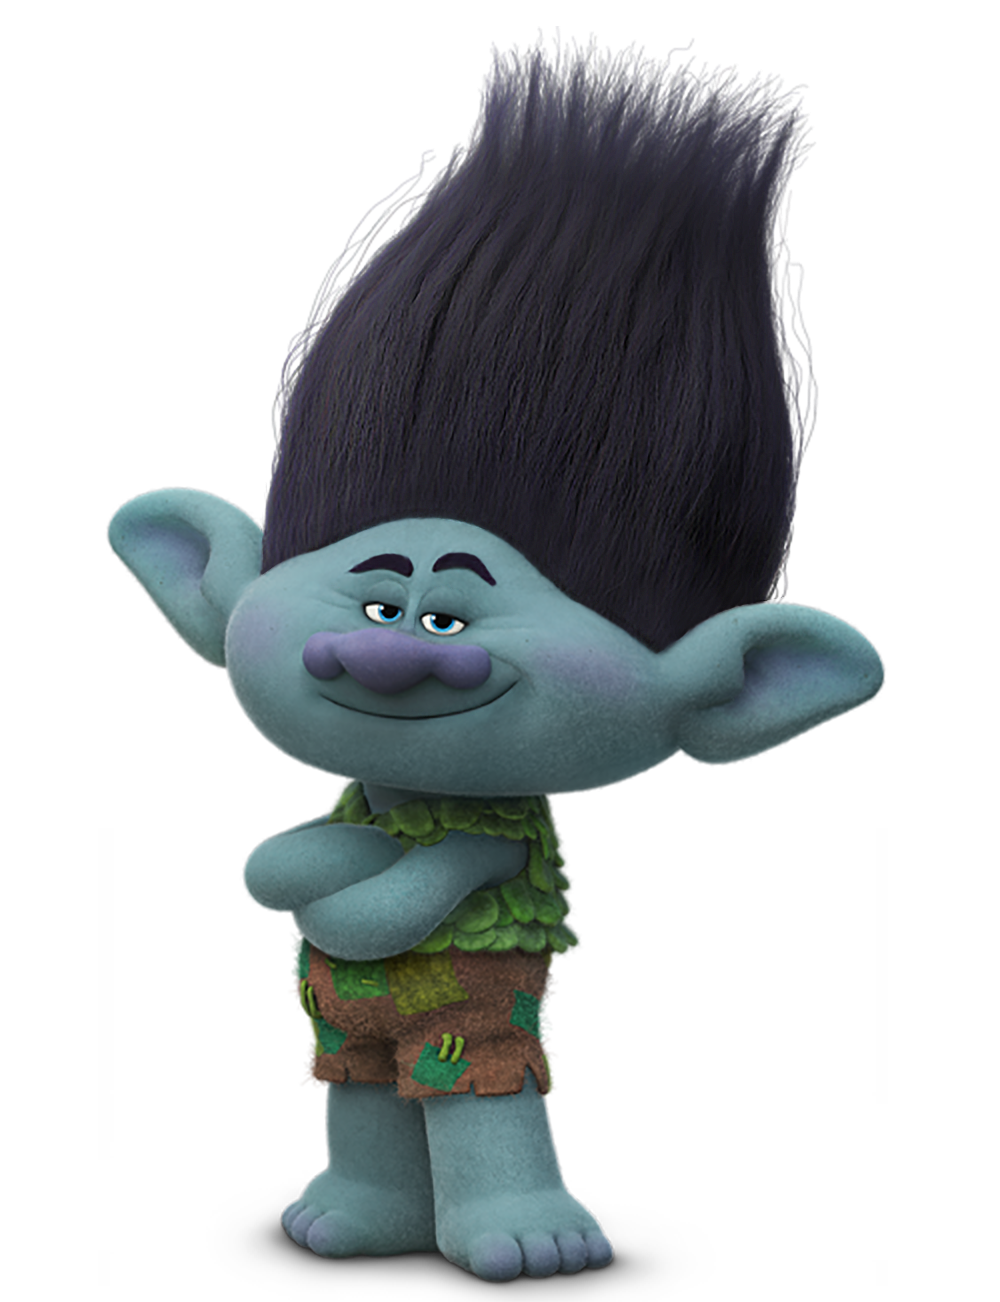 Trolls png images. Branch transparent image gallery